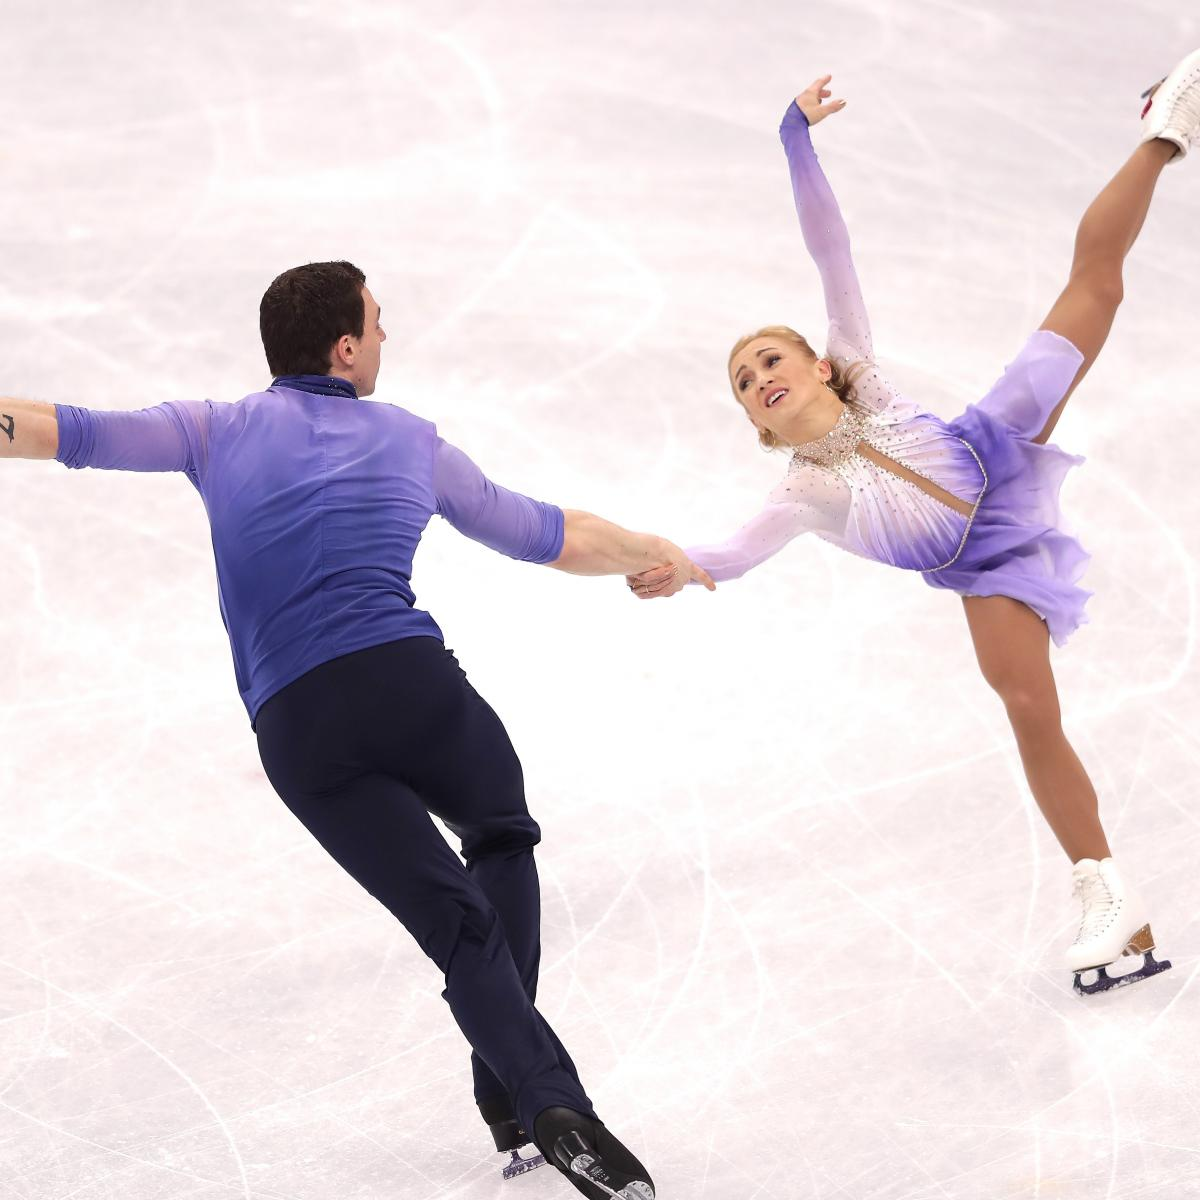 Pairs Figure Skating Results 2018: Germany Wins Gold After